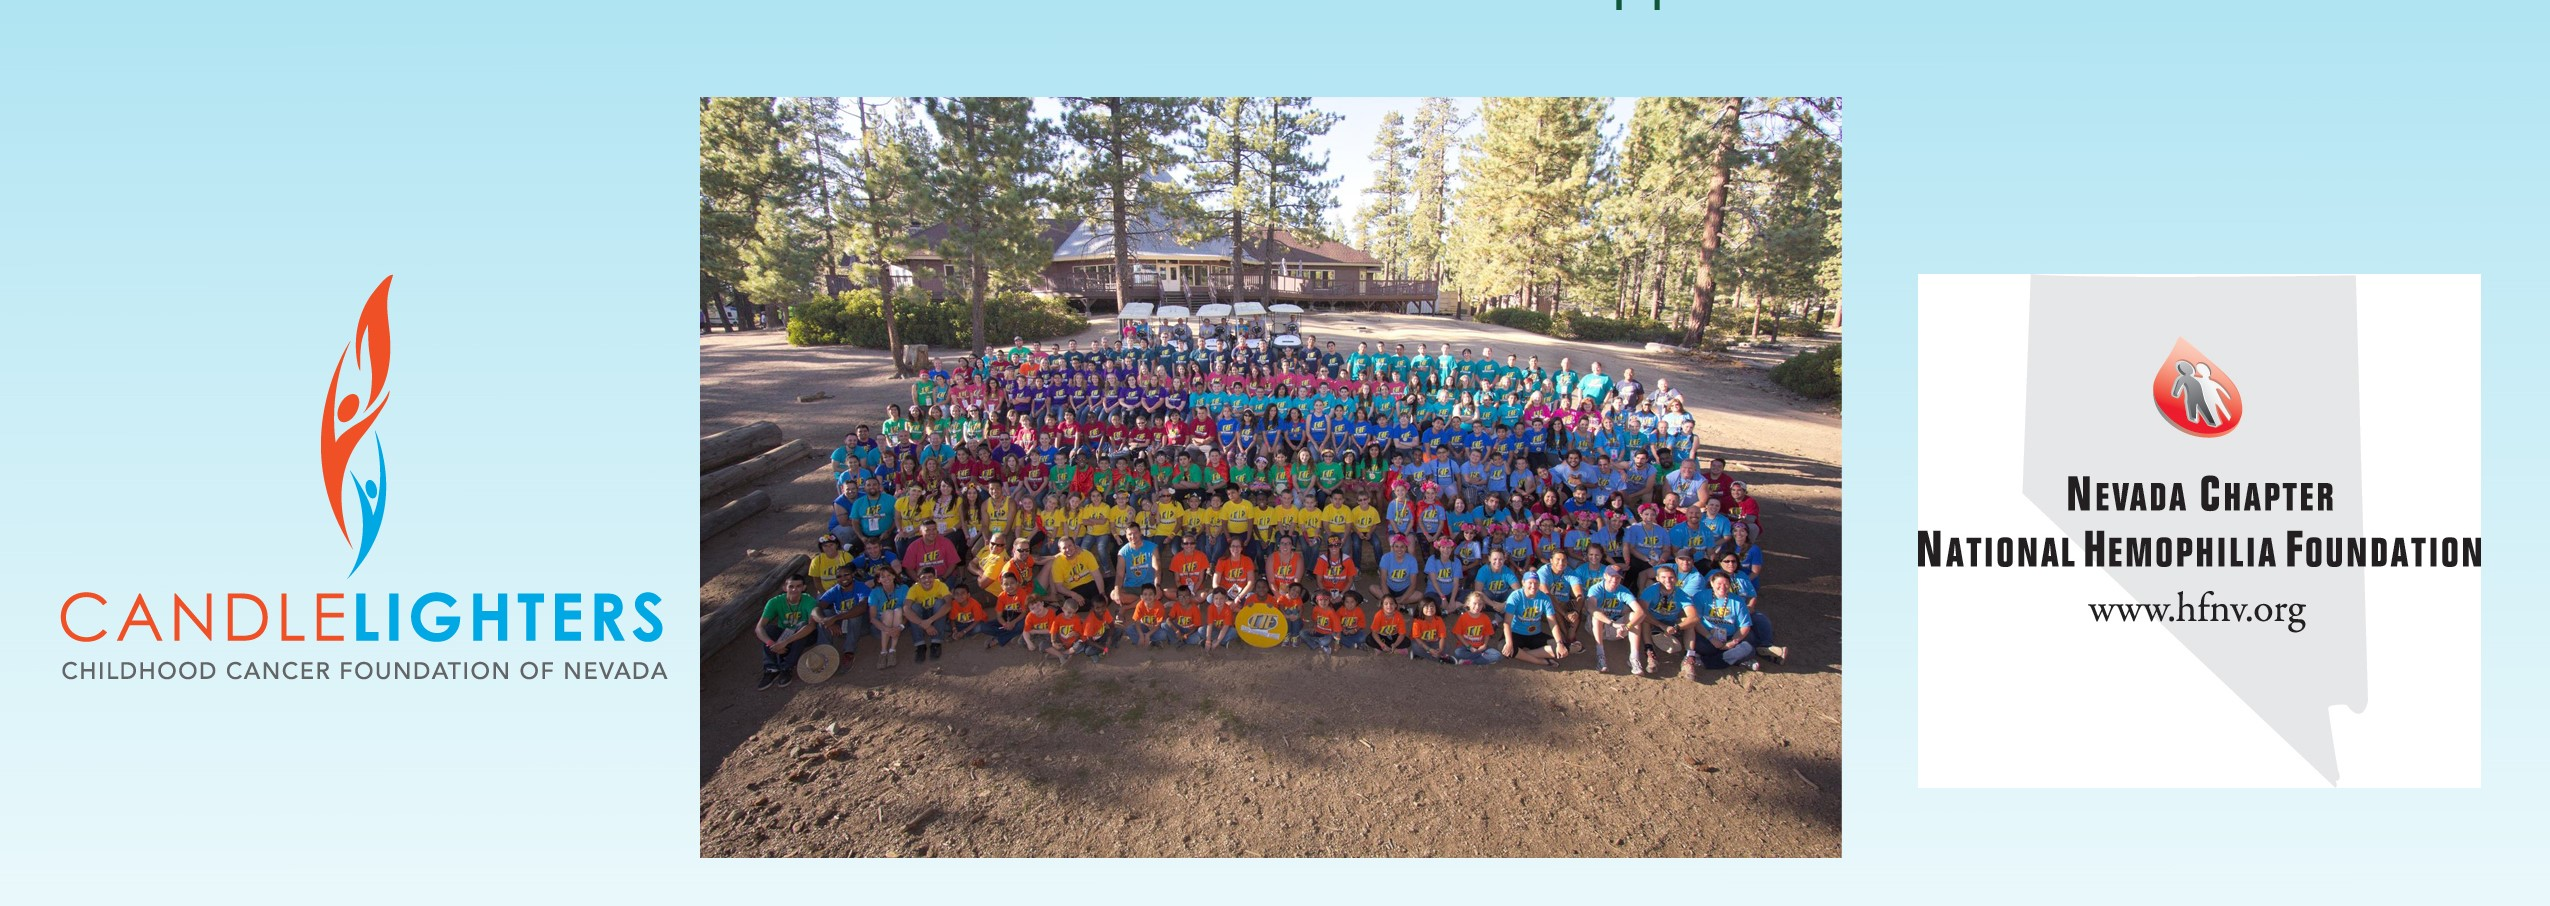 CAMPER APPLICATIONS ARE NOW OPEN!